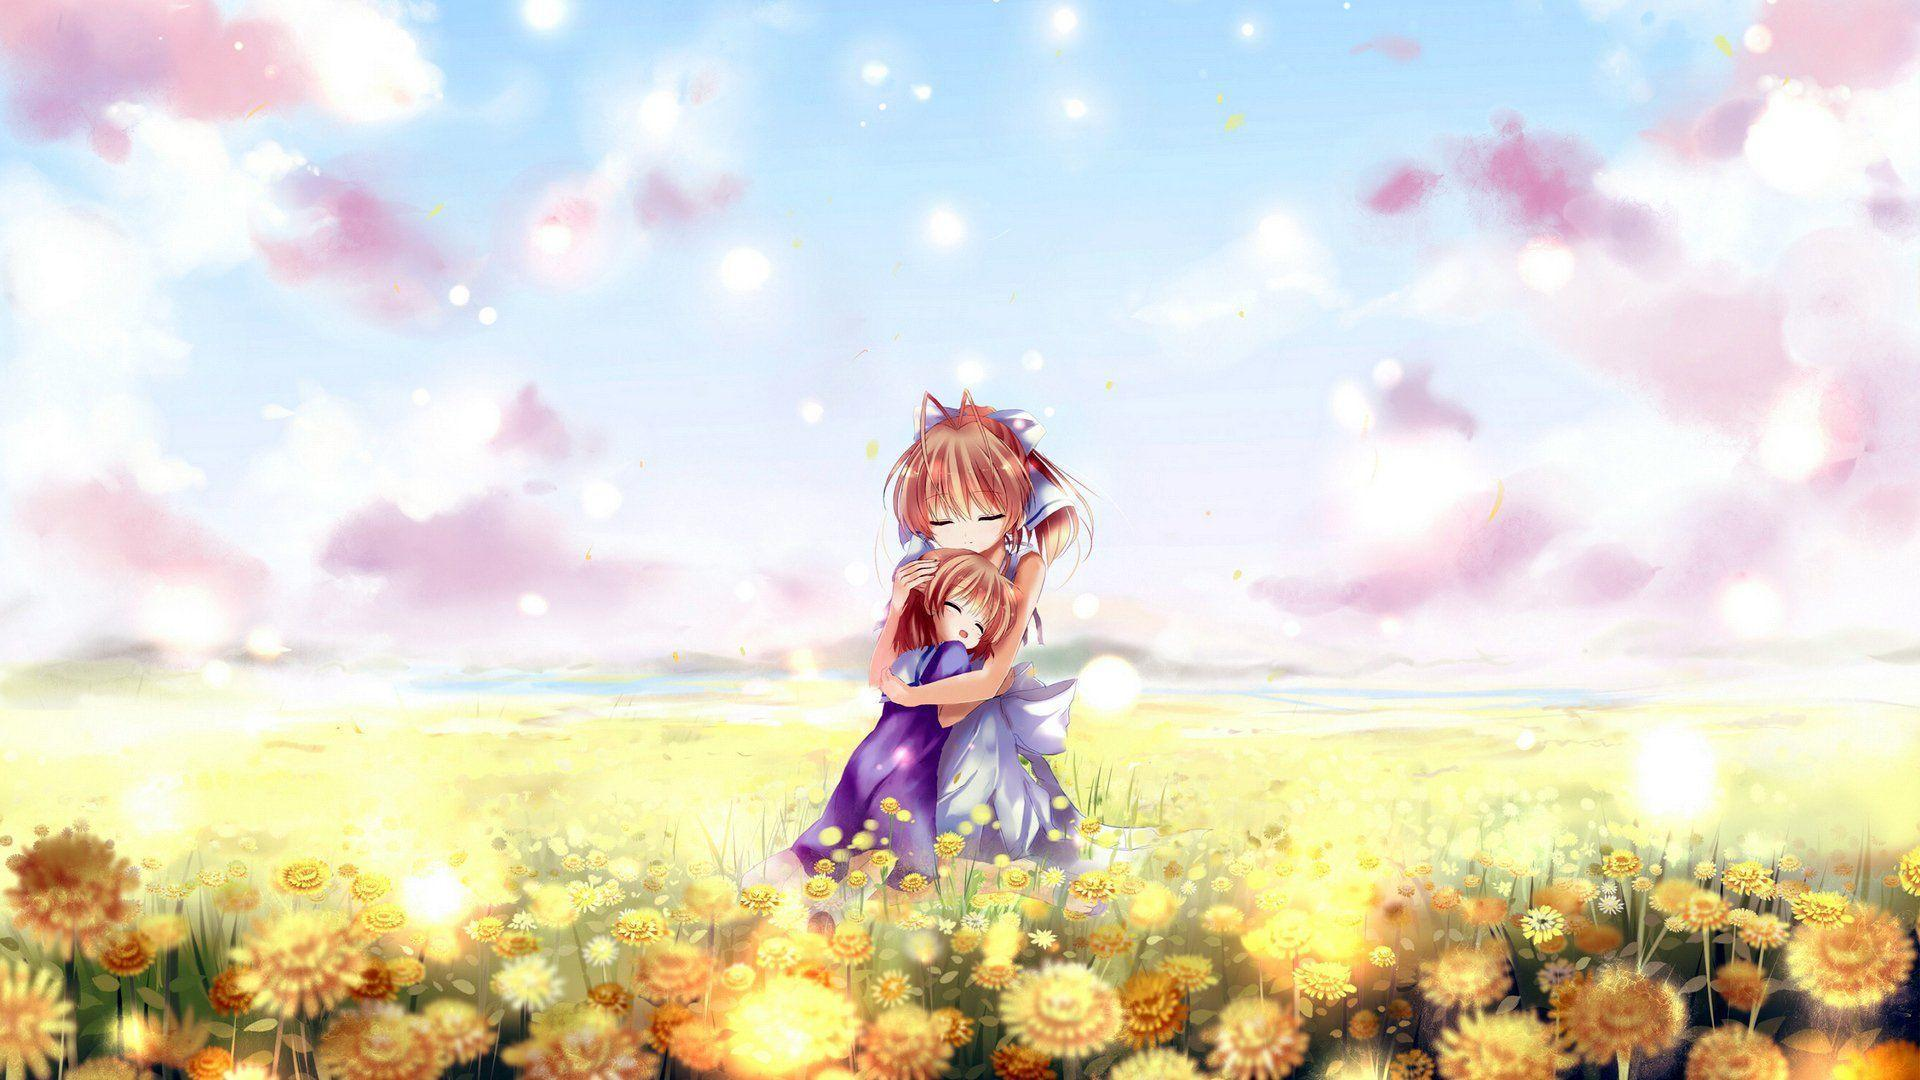 Clannad Computer Wallpapers